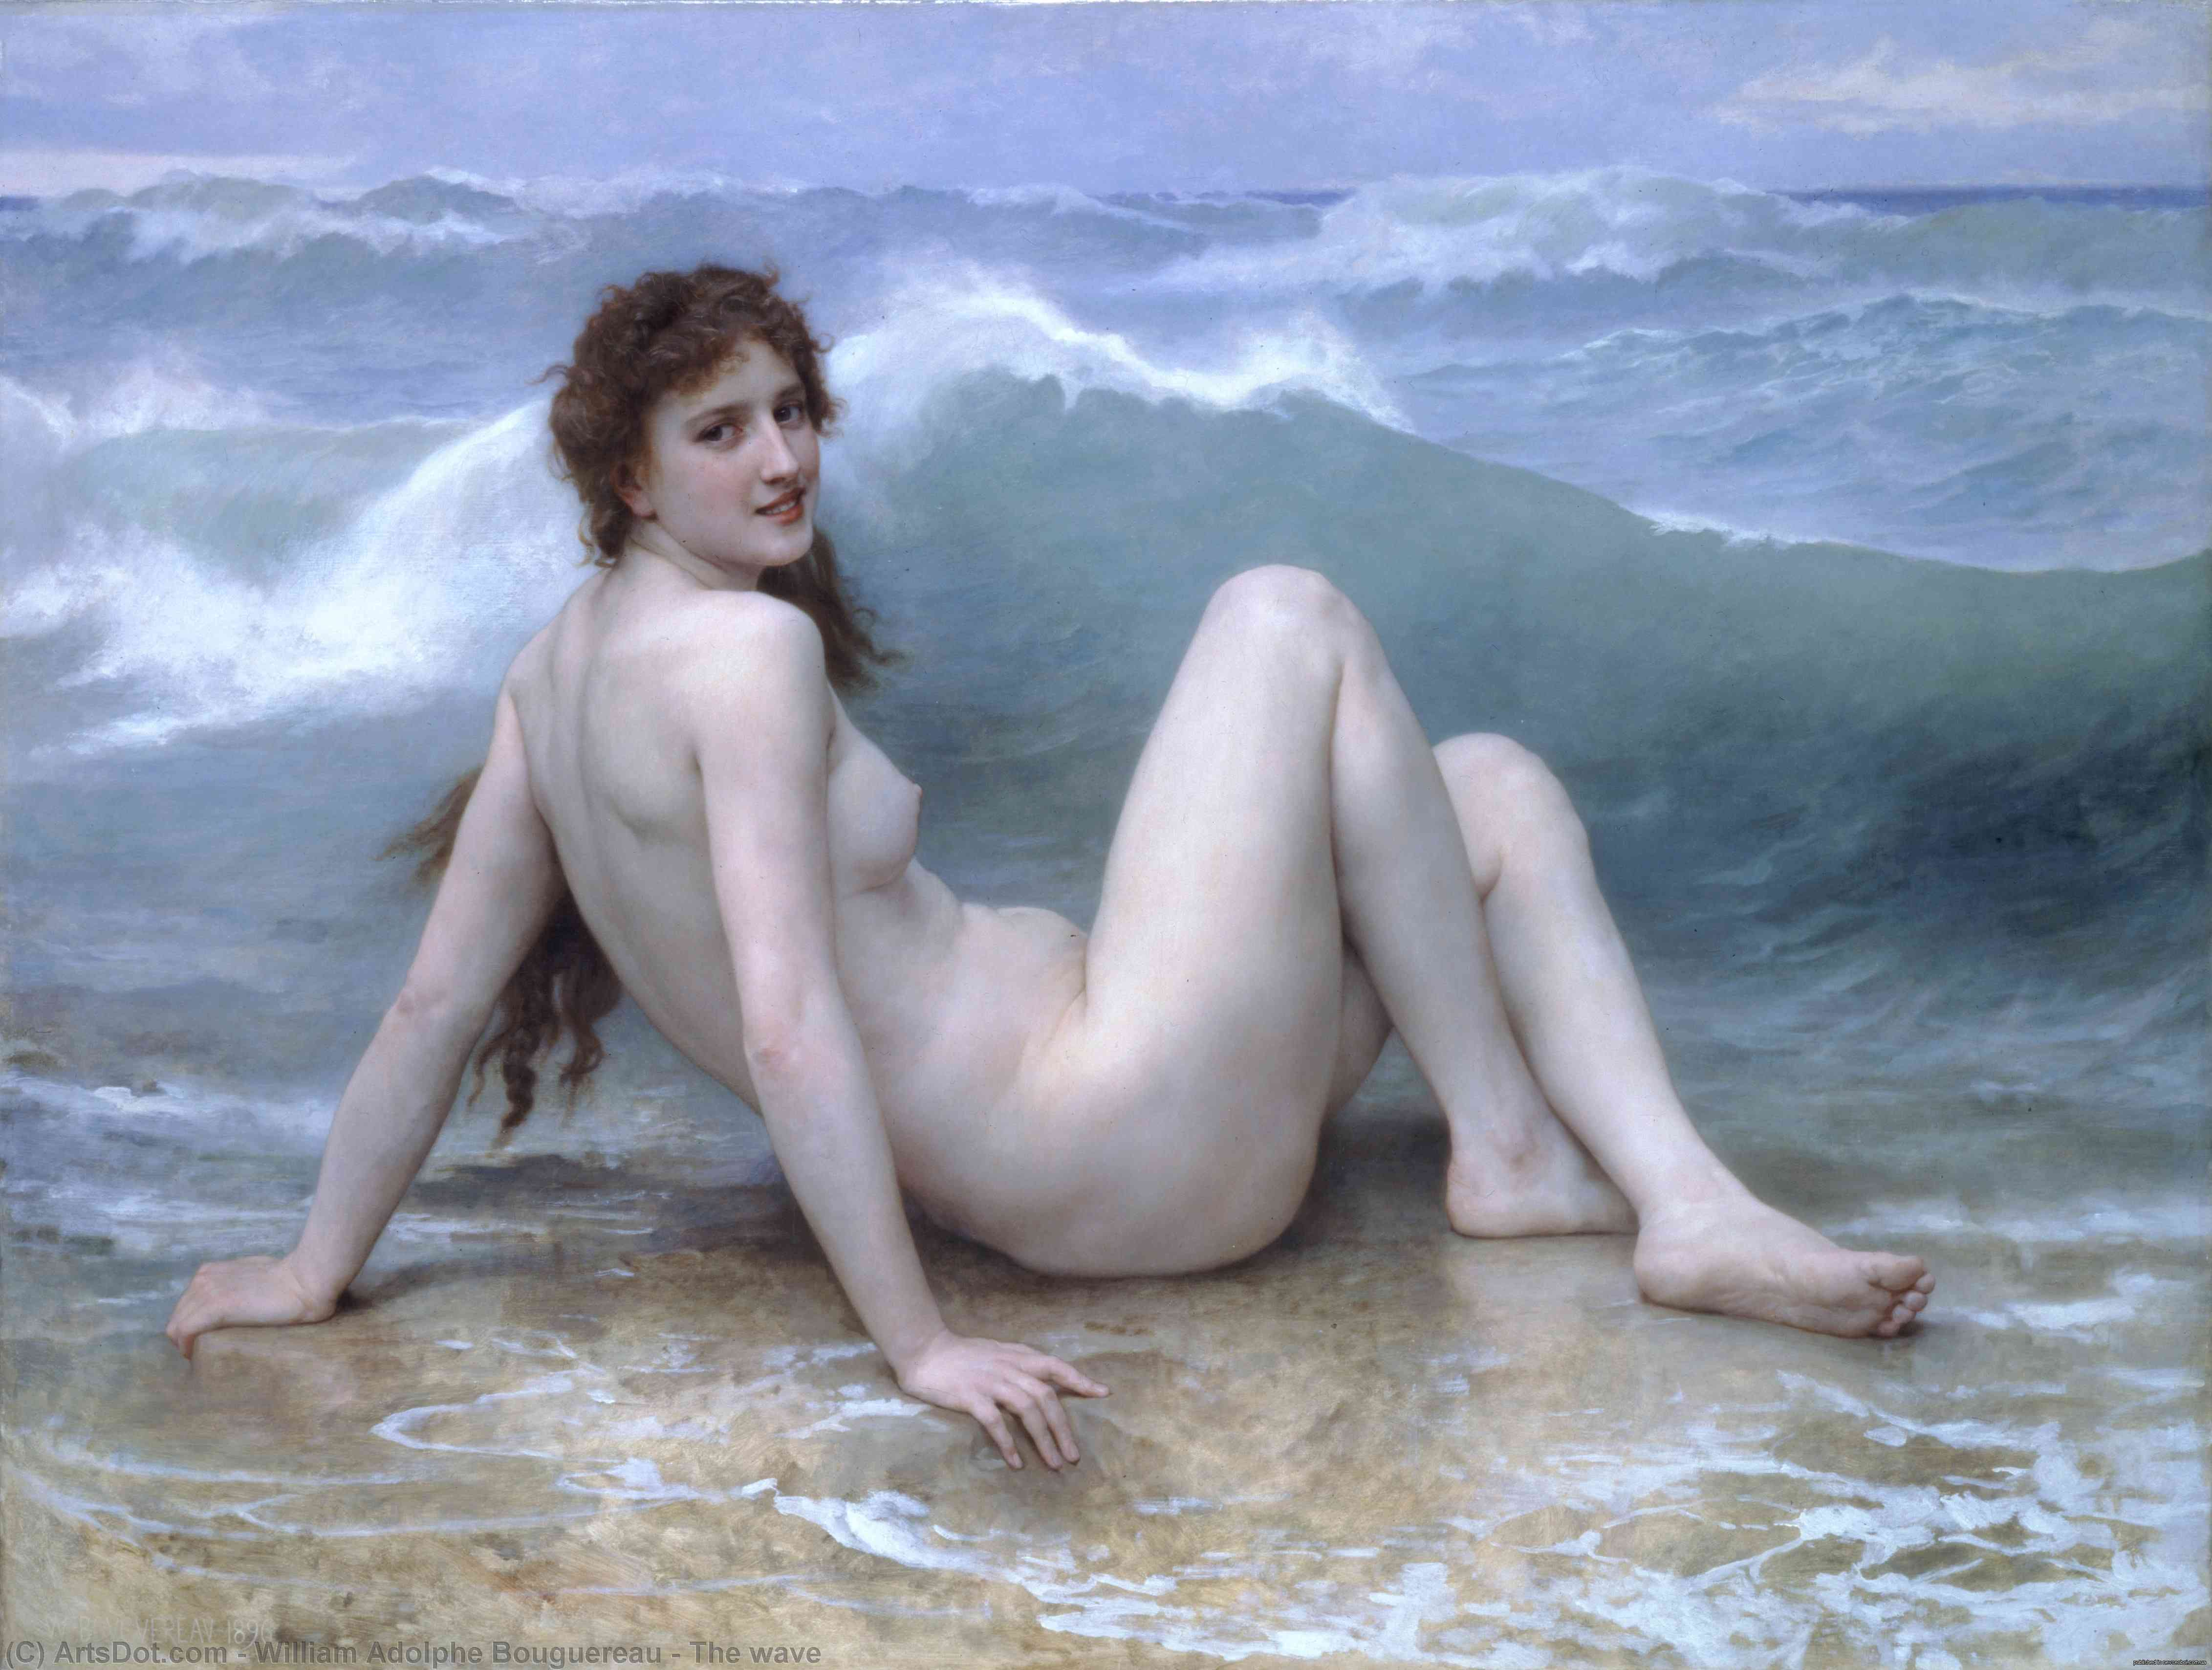 le onde, 1896 de William Adolphe Bouguereau (1825-1905, France) | Reproductions D'art William Adolphe Bouguereau | ArtsDot.com